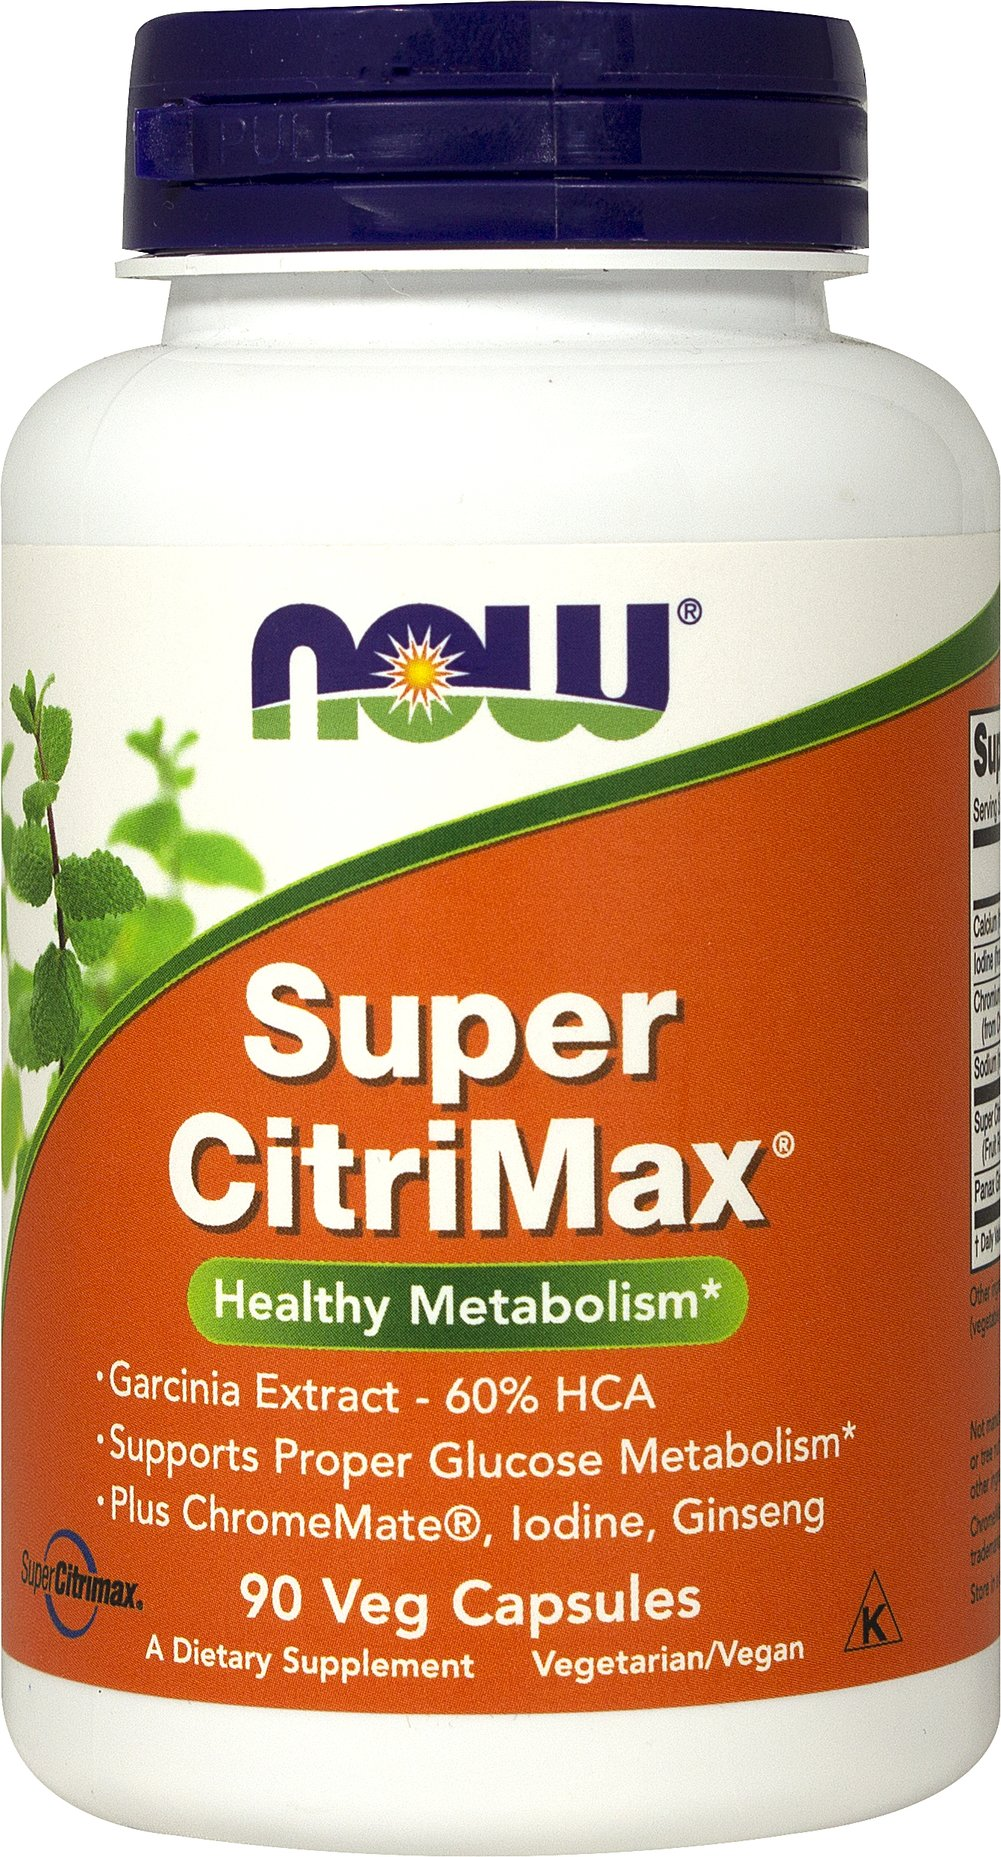 Super Citrimax <p><strong>From the Manufacturer's Label:</strong></p><p>Super Citrimax is manufactured by NOW Foods®.</p> 90 Capsules  $14.99